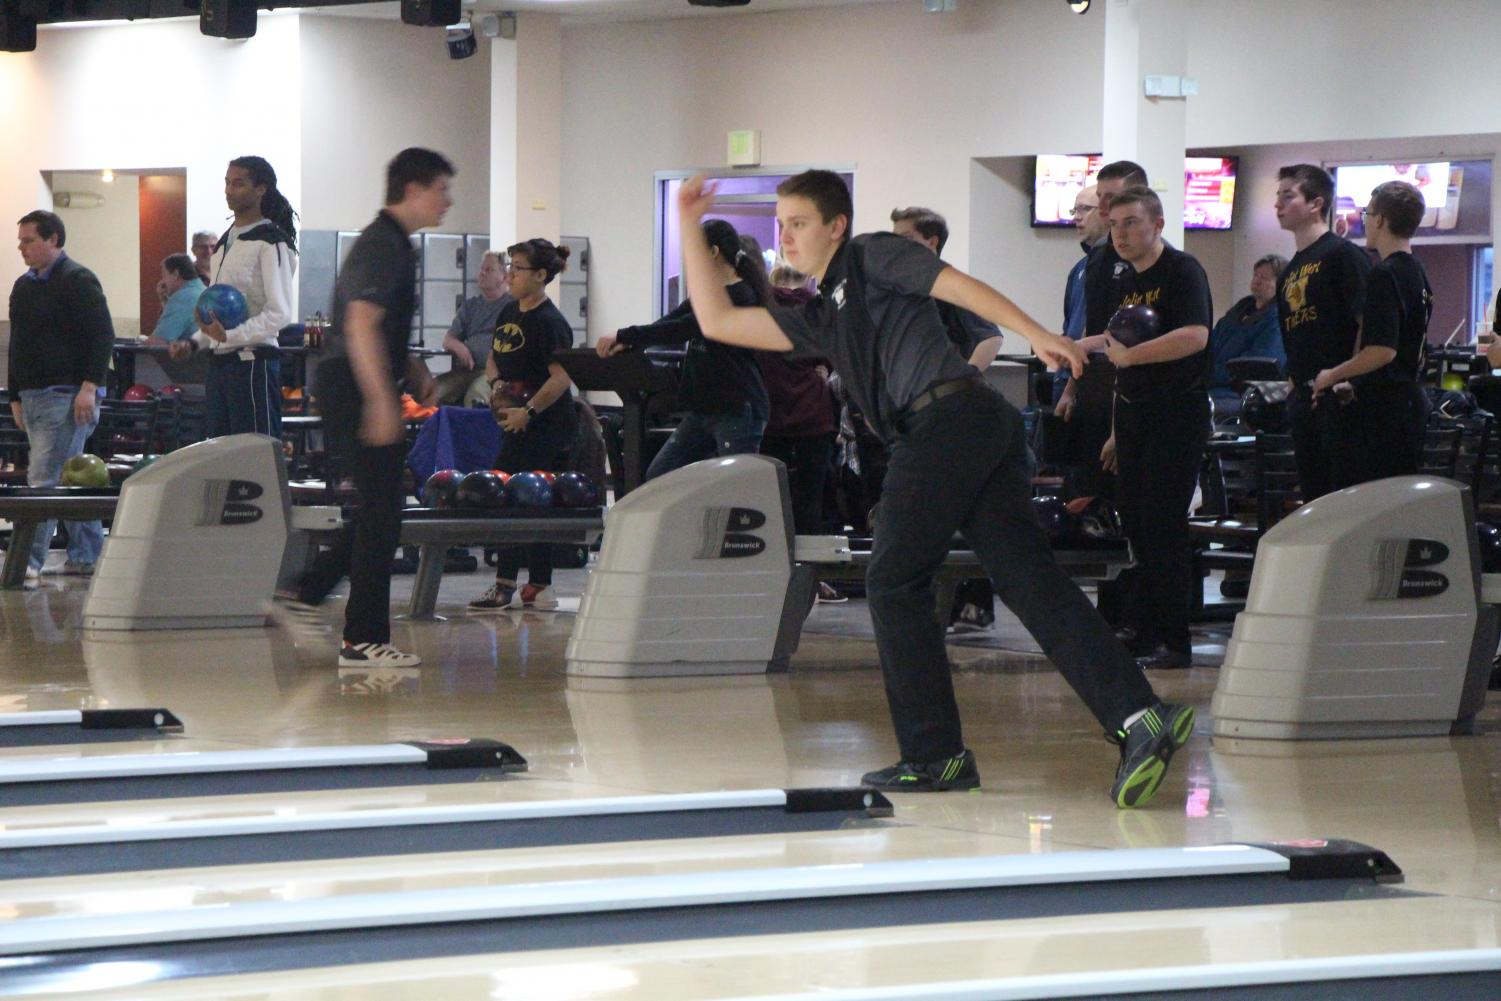 Sophomore Mason Craig bowls during the tournament against Joliet West on Tuesday, Dec. 11.  The team       obtained 2 out of 10 points, winning only the last game.